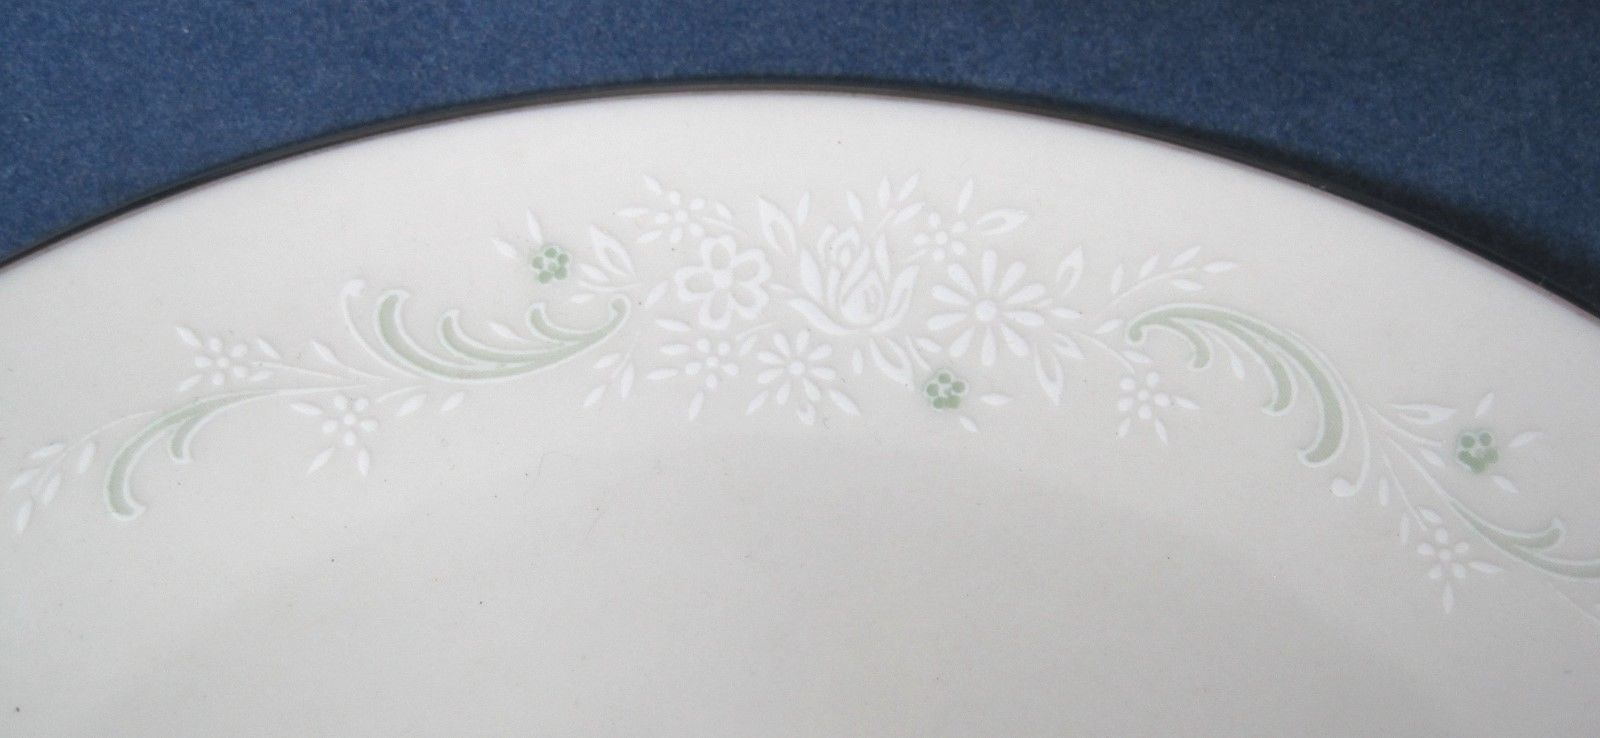 "Primary image for Noritake Pamela 1967 - 1973 Set of 6 Bread & Butter  Plates 6 3/8"" Silver Edge"